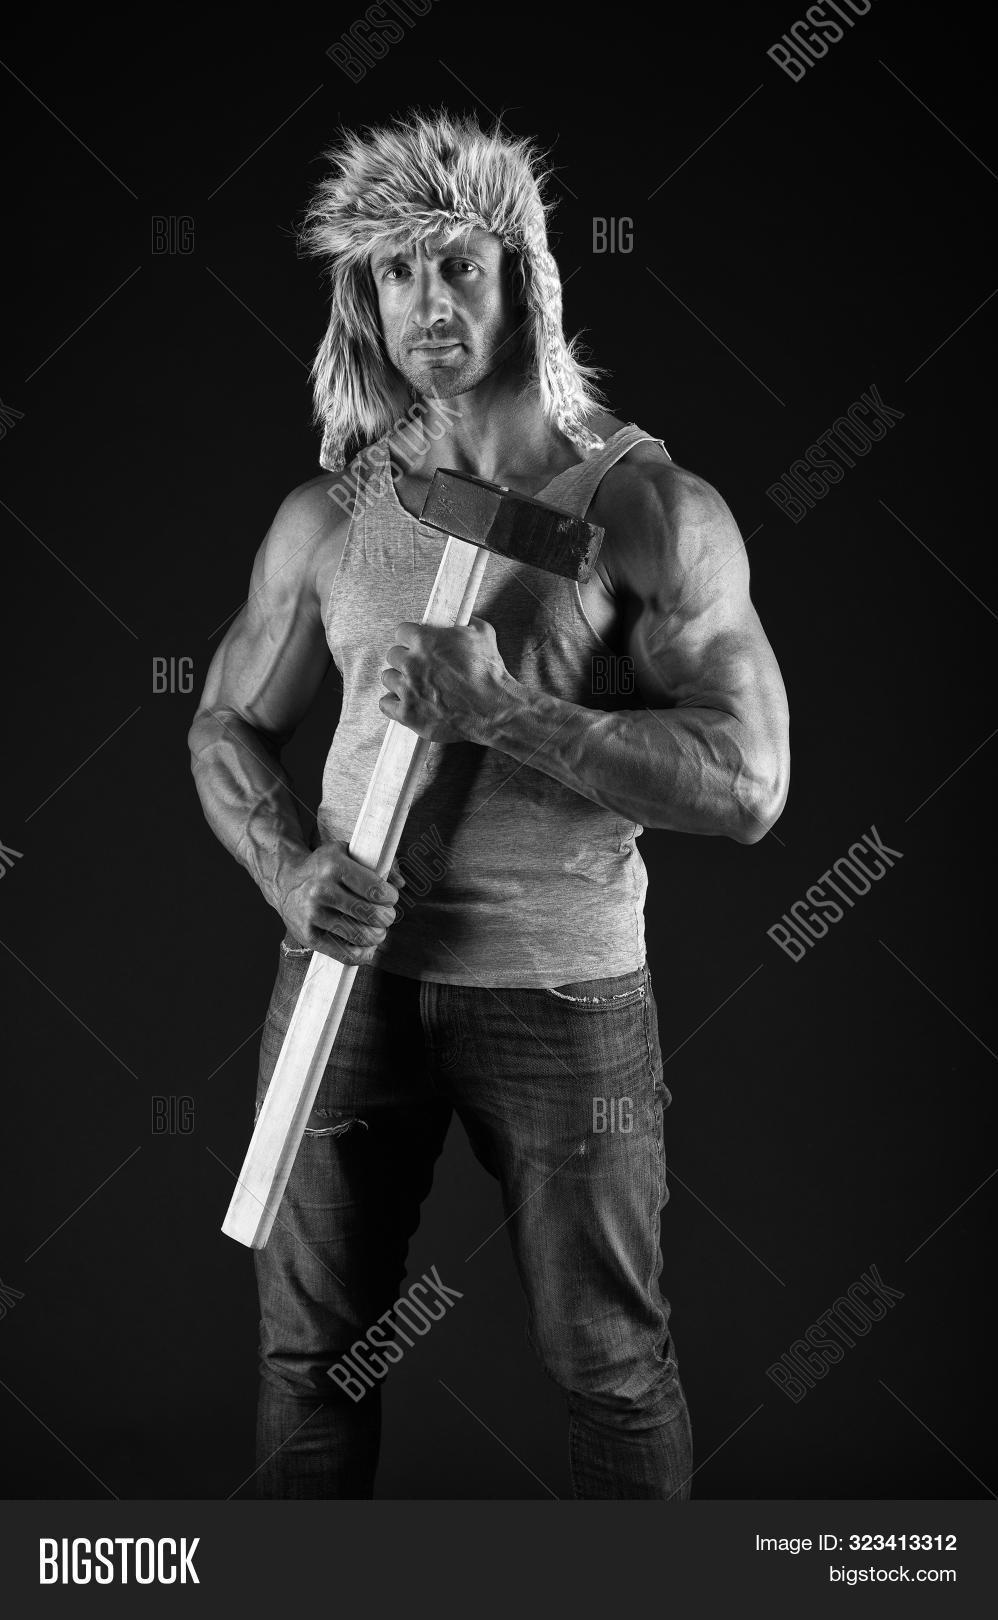 ab,athlete,athletic,attractive,ax,axe,biceps,body,bodybuilder,brutal,brutality,carry,caucasian,chest,concept,desire,equipment,erotic,explorer,fit,fitness,forester,guy,hack,handsome,hipster,is,lifestyle,lumberjack,macho,male,man,masculine,masculinity,muscle,muscular,naked,new,sexy,strong,torso,triceps,woodcutter,woodman,woodsman